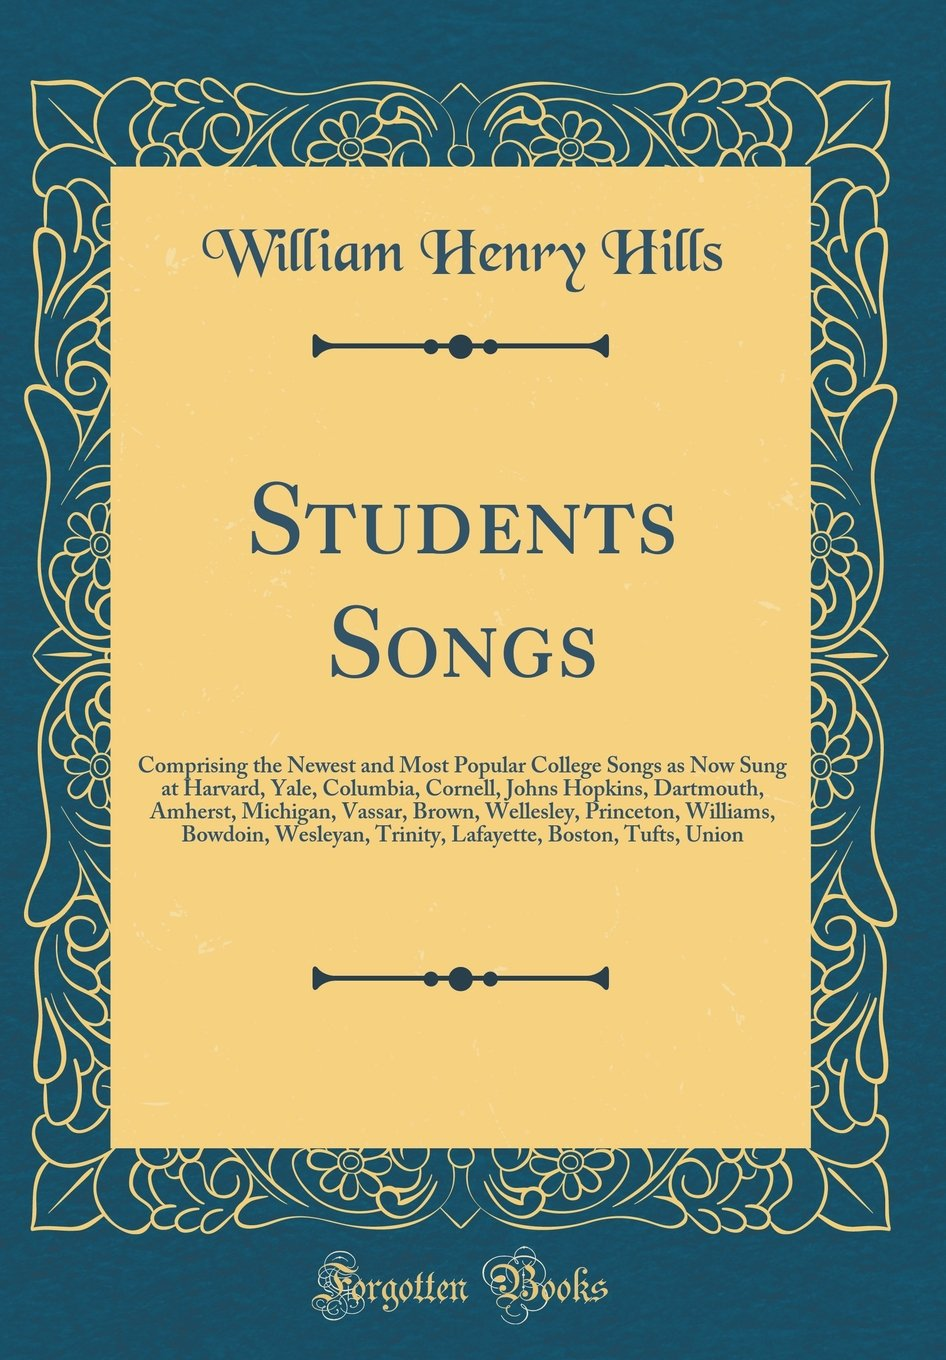 Download Students Songs: Comprising the Newest and Most Popular College Songs as Now Sung at Harvard, Yale, Columbia, Cornell, Johns Hopkins, Dartmouth, ... Bowdoin, Wesleyan, Trinity, Lafayette, Boston PDF